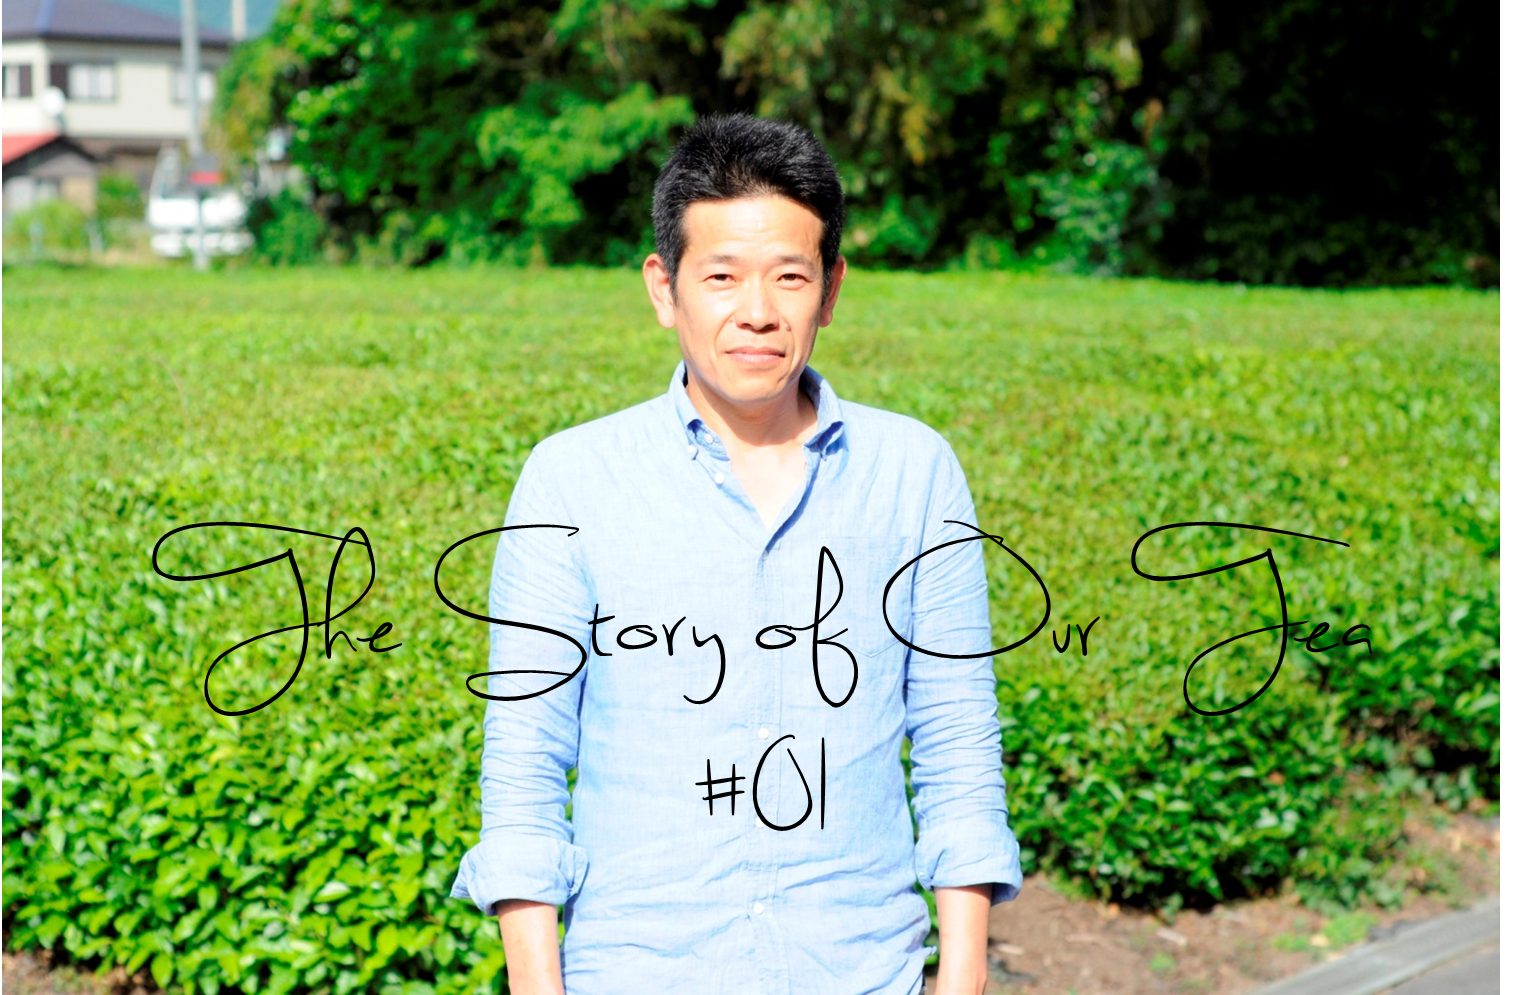 The Story of Our Tea #01 / 満田さんの話